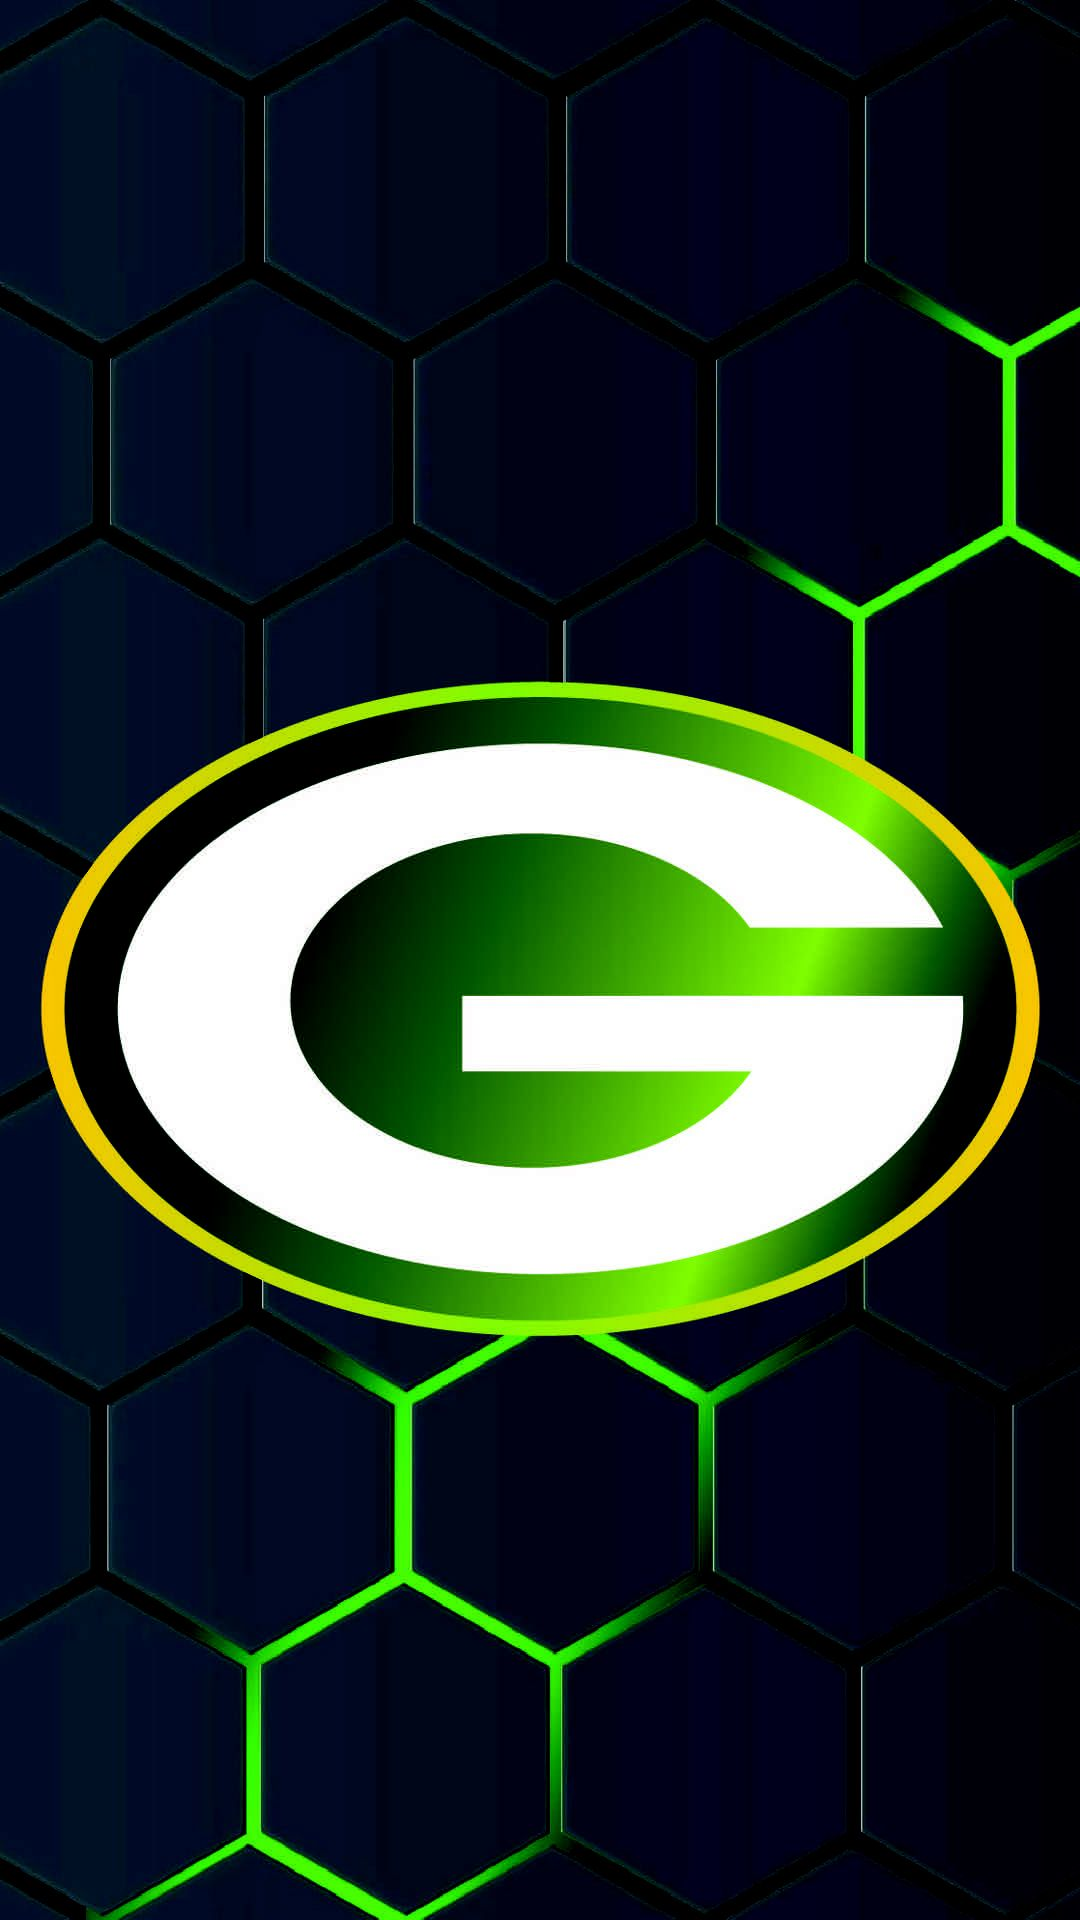 Green Bay Packers Green Bay Packers Wallpaper Green Bay Packers Logo Green Bay Packers Clothing